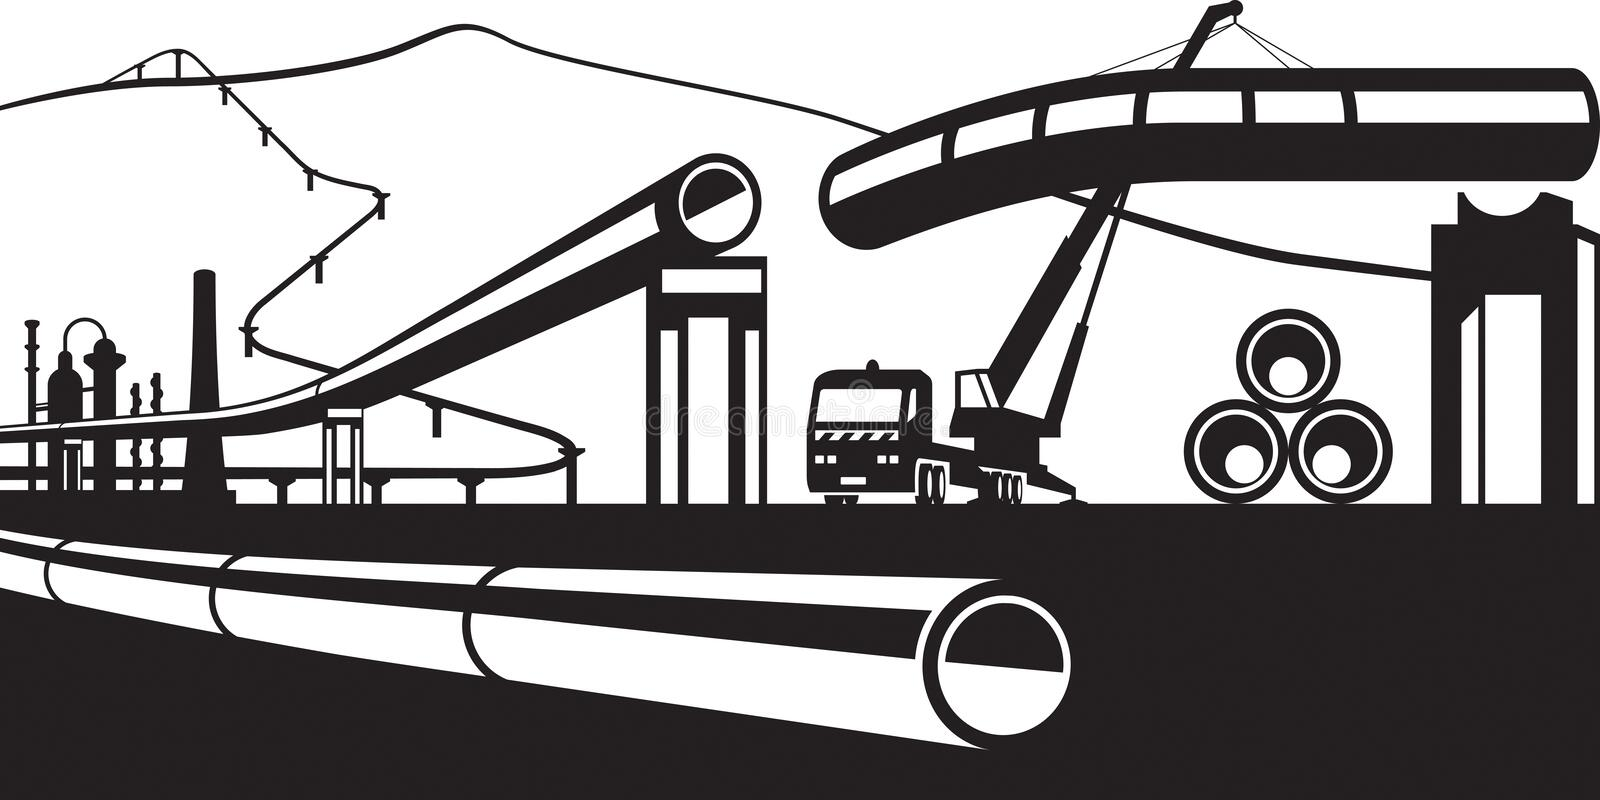 Construction of industrial pipelines royalty free illustration